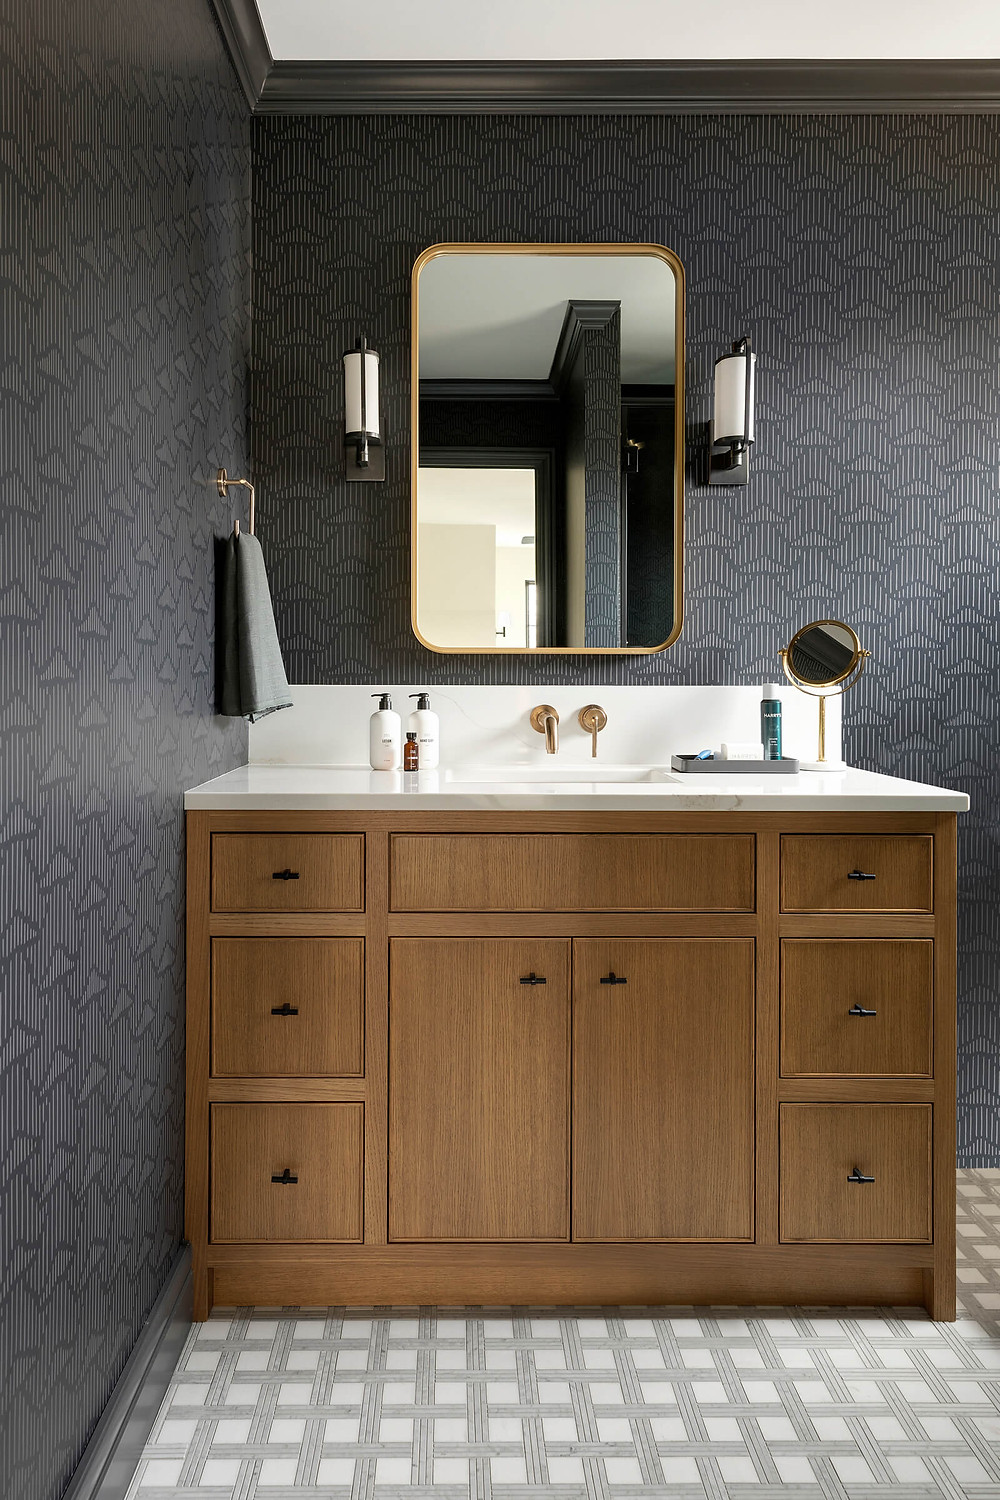 Moody bathroom design, patterned wallpaper, stone mosaic floor tile, white oak vanity with gold and black fixtures.